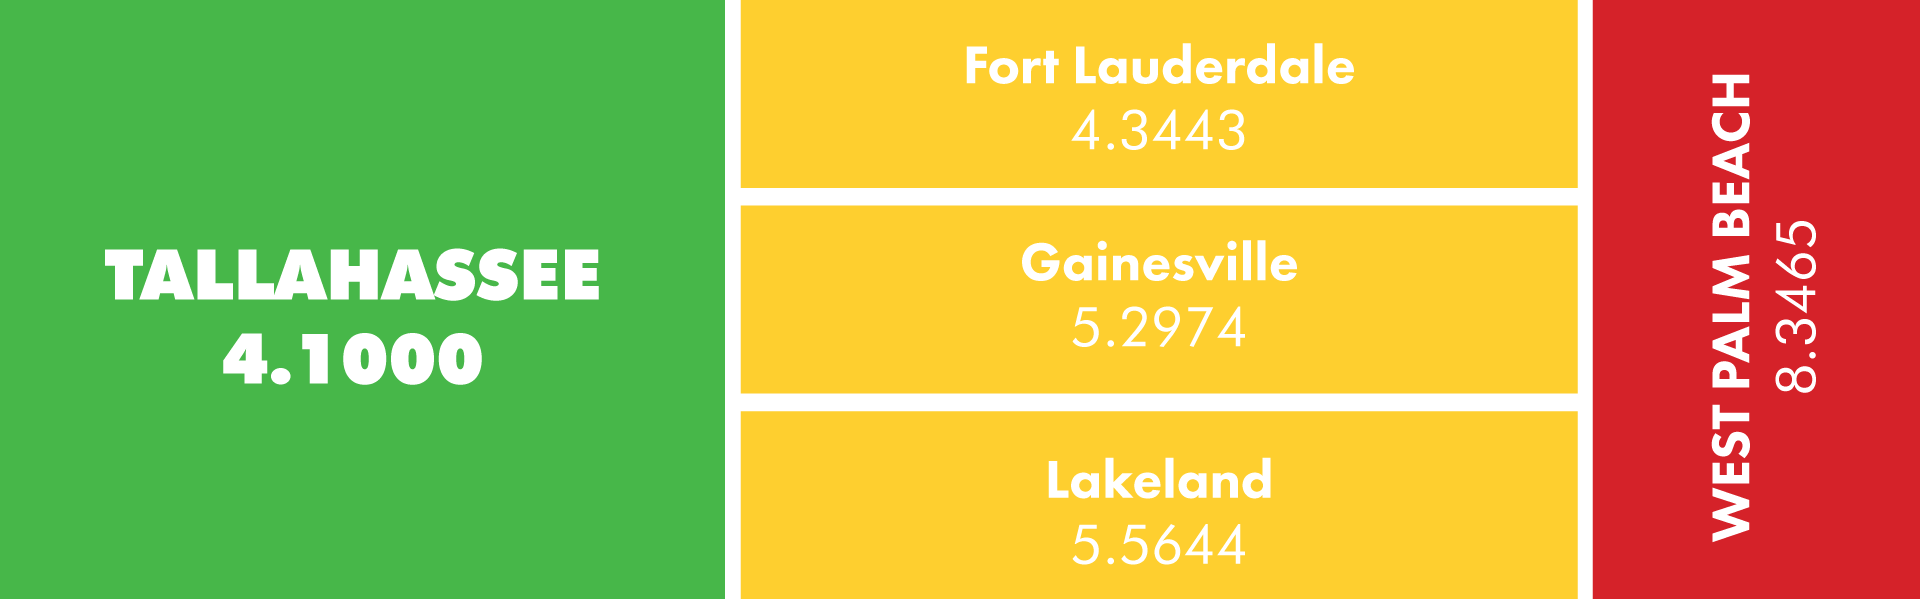 2021 Millage Rates - Fort Lauderdale: 4.3443, Gainesville: 5.2974, Lakeland: 5.5644, West Palm Beach: 8.3465